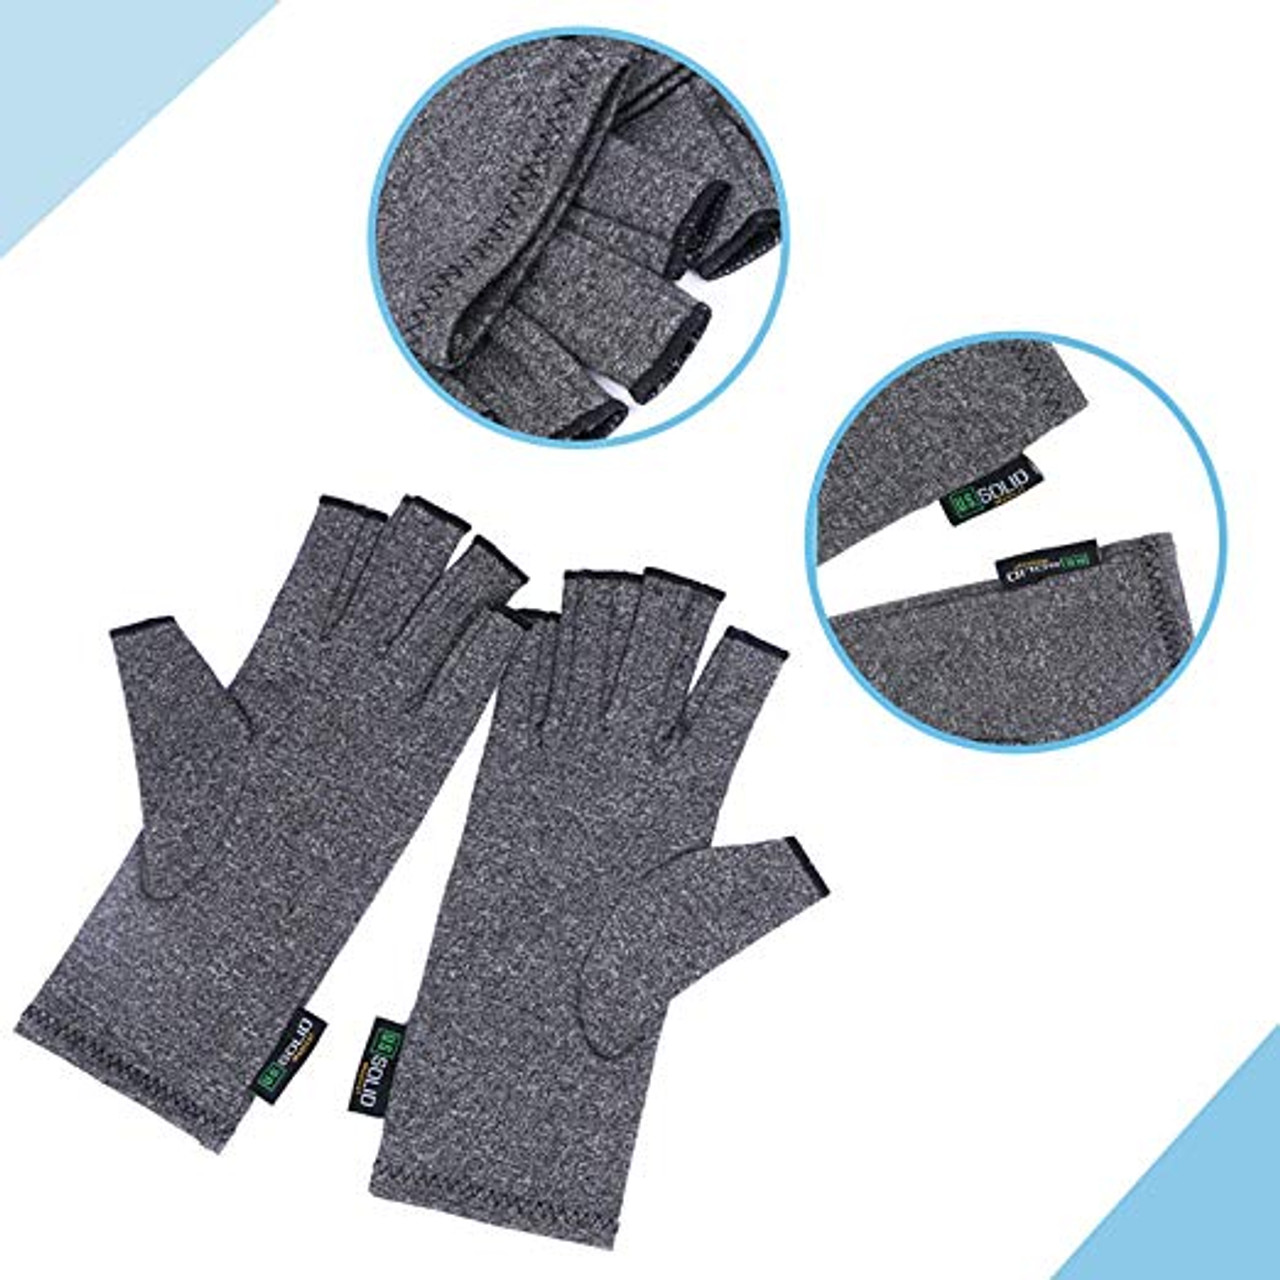 "Compression Gloves- Relieve Arthritis Pain, Medium (Dia. of palm < 3.5"")"